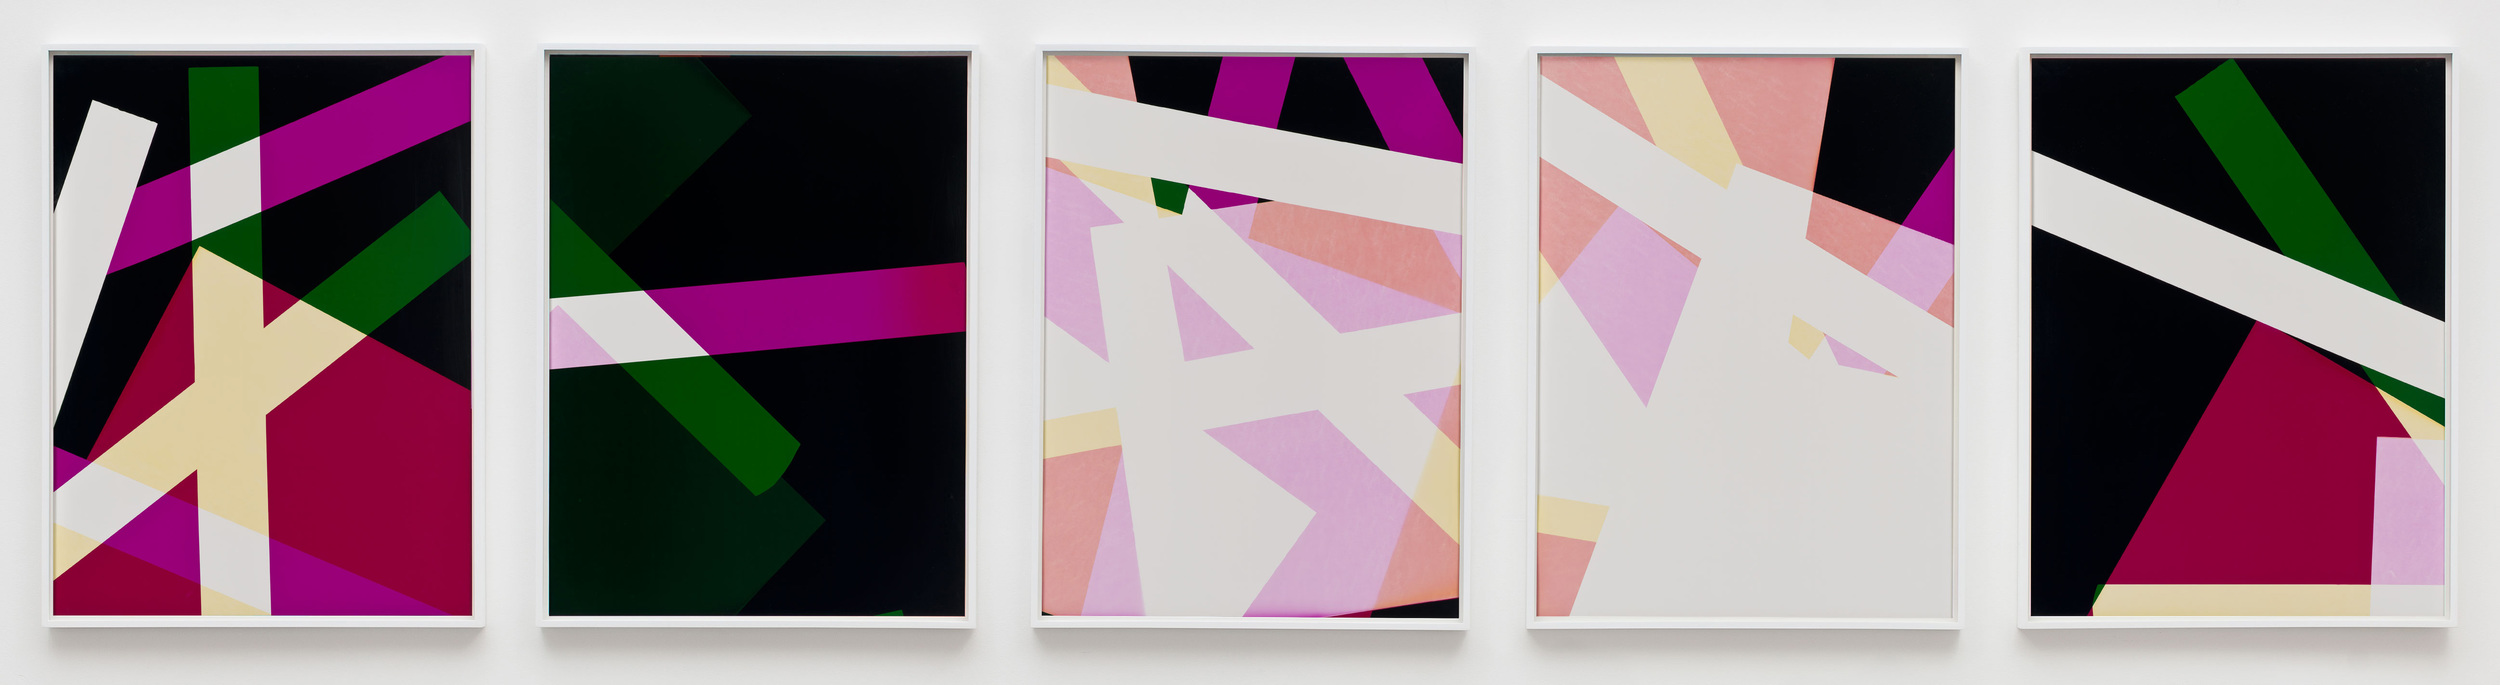 Combine Prints (Three-phase Composition, CMY/Five Magnet: Irvine, California, March 25, 2010, Fuji Color Crystal Archive Super Type C, Em. No. 148-006, 18510–18910)    2010   Color photographic paper  40 x 30 inches each, 5 parts